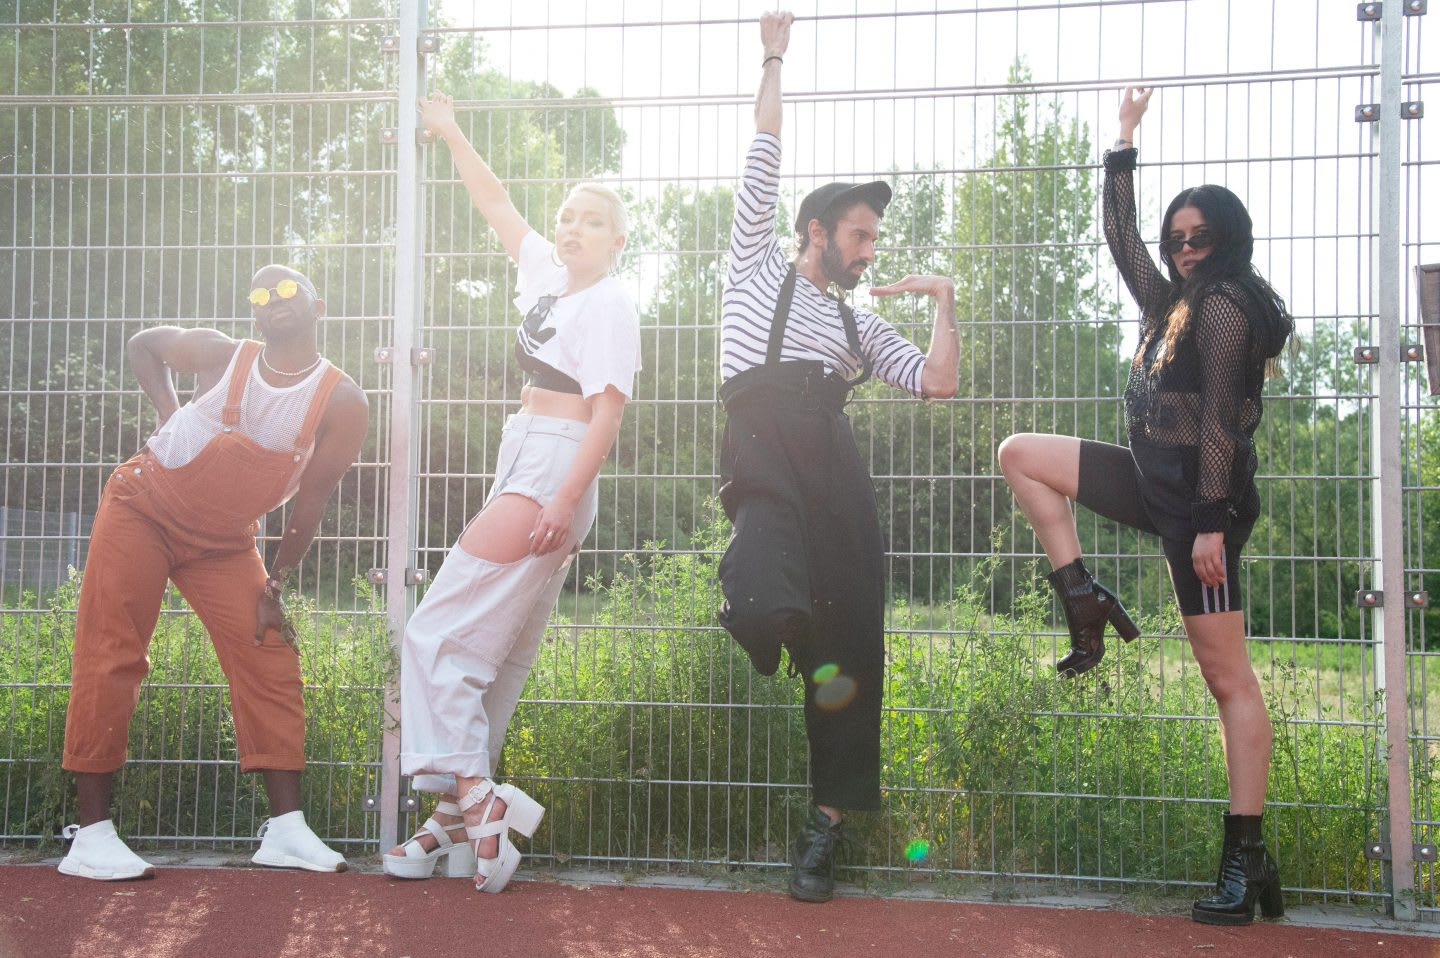 Two men and women posing dramatically against a wire fence, voguing, vogue, photography, attitude, posing, adidas, employees, confidence, GamePlan A